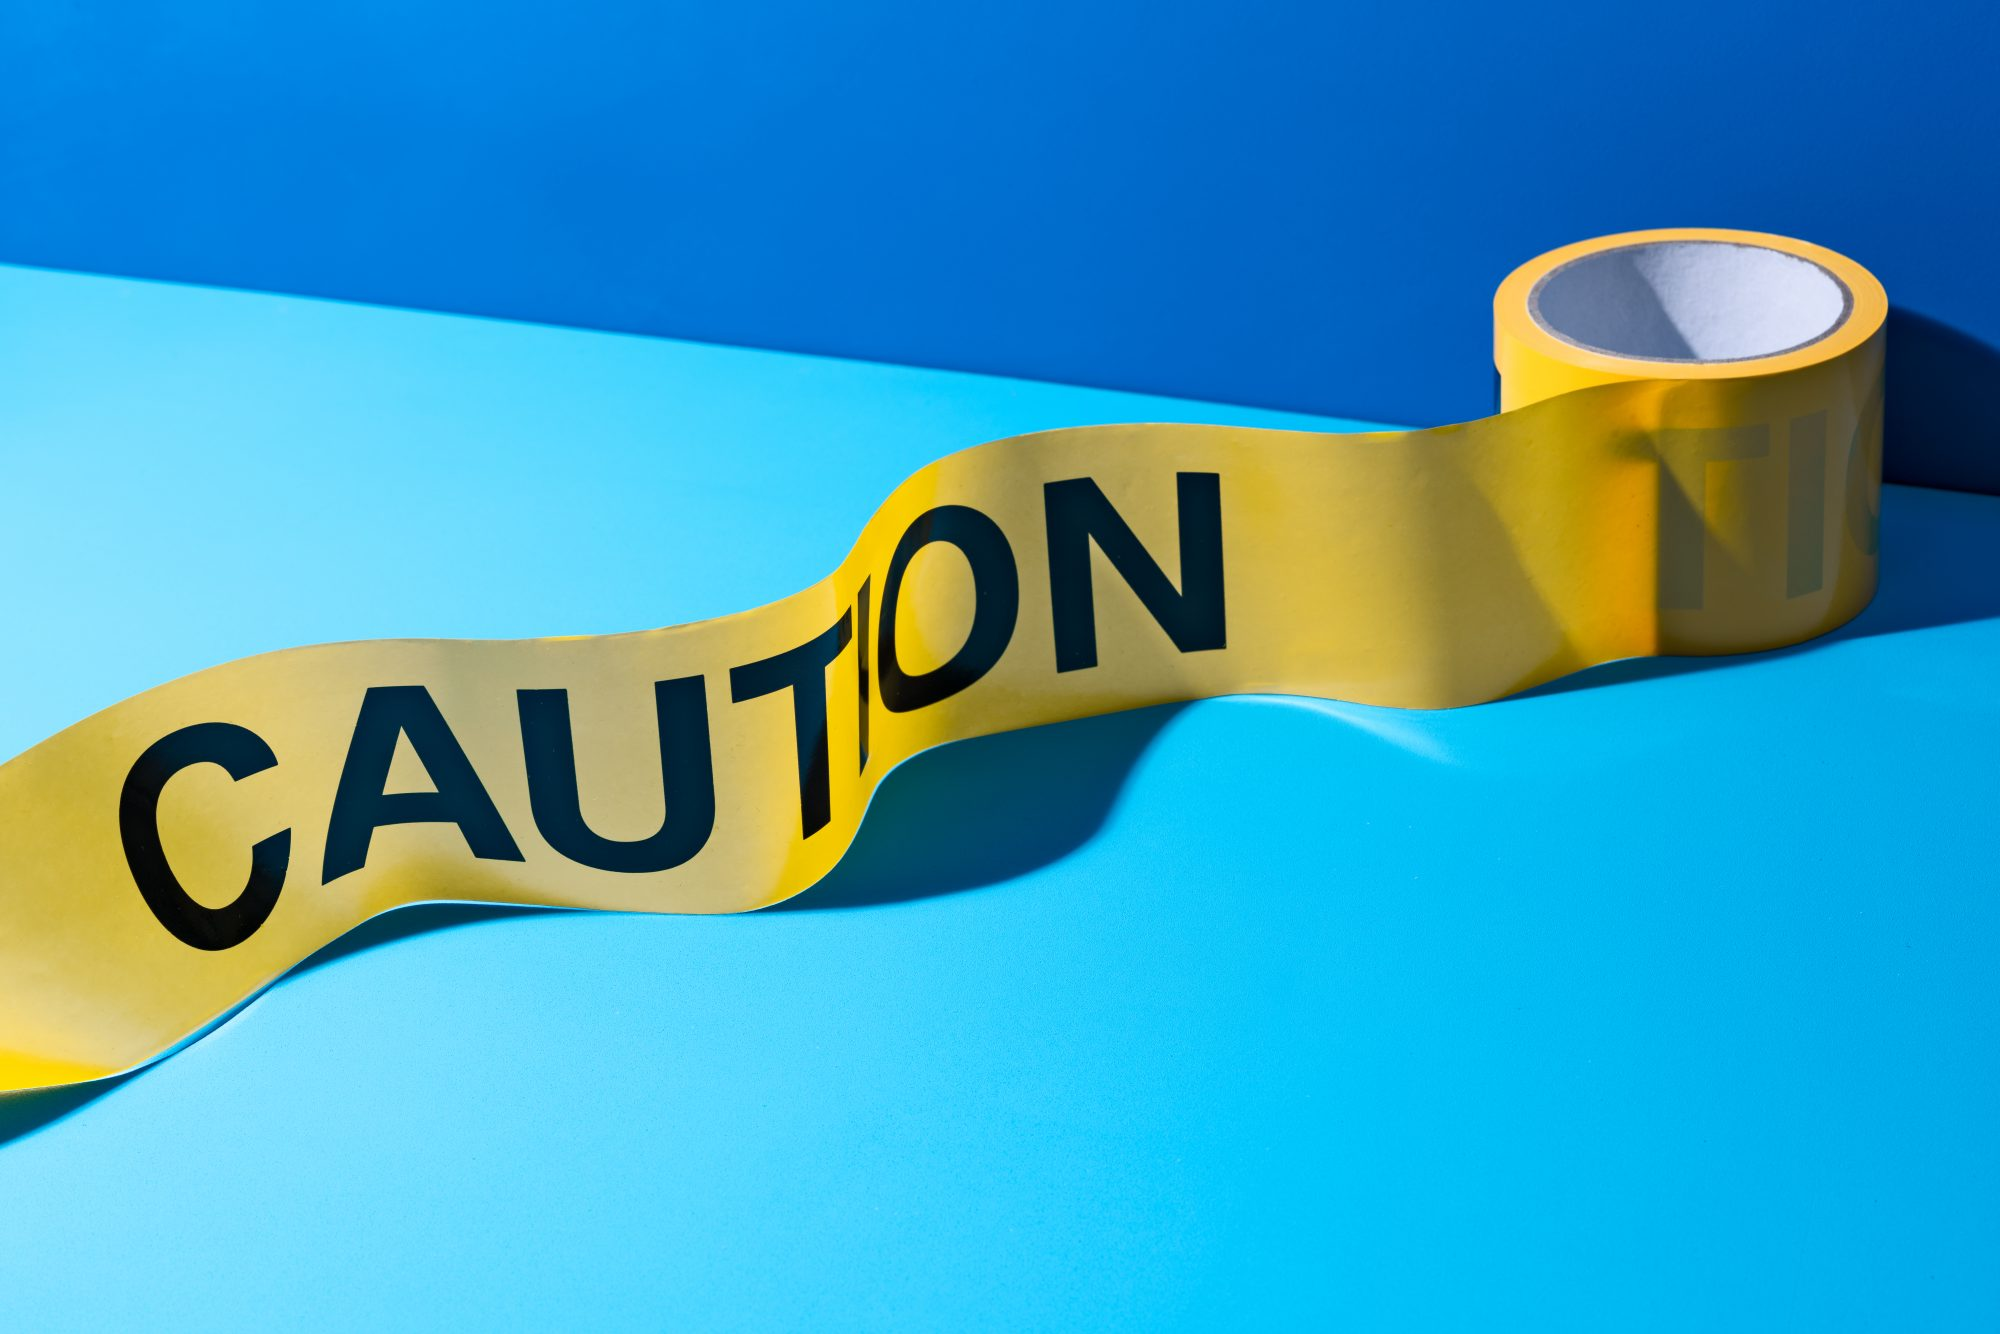 How to Handle Adult Bullies: A Roll of Caution Tape on Blue Colored Background